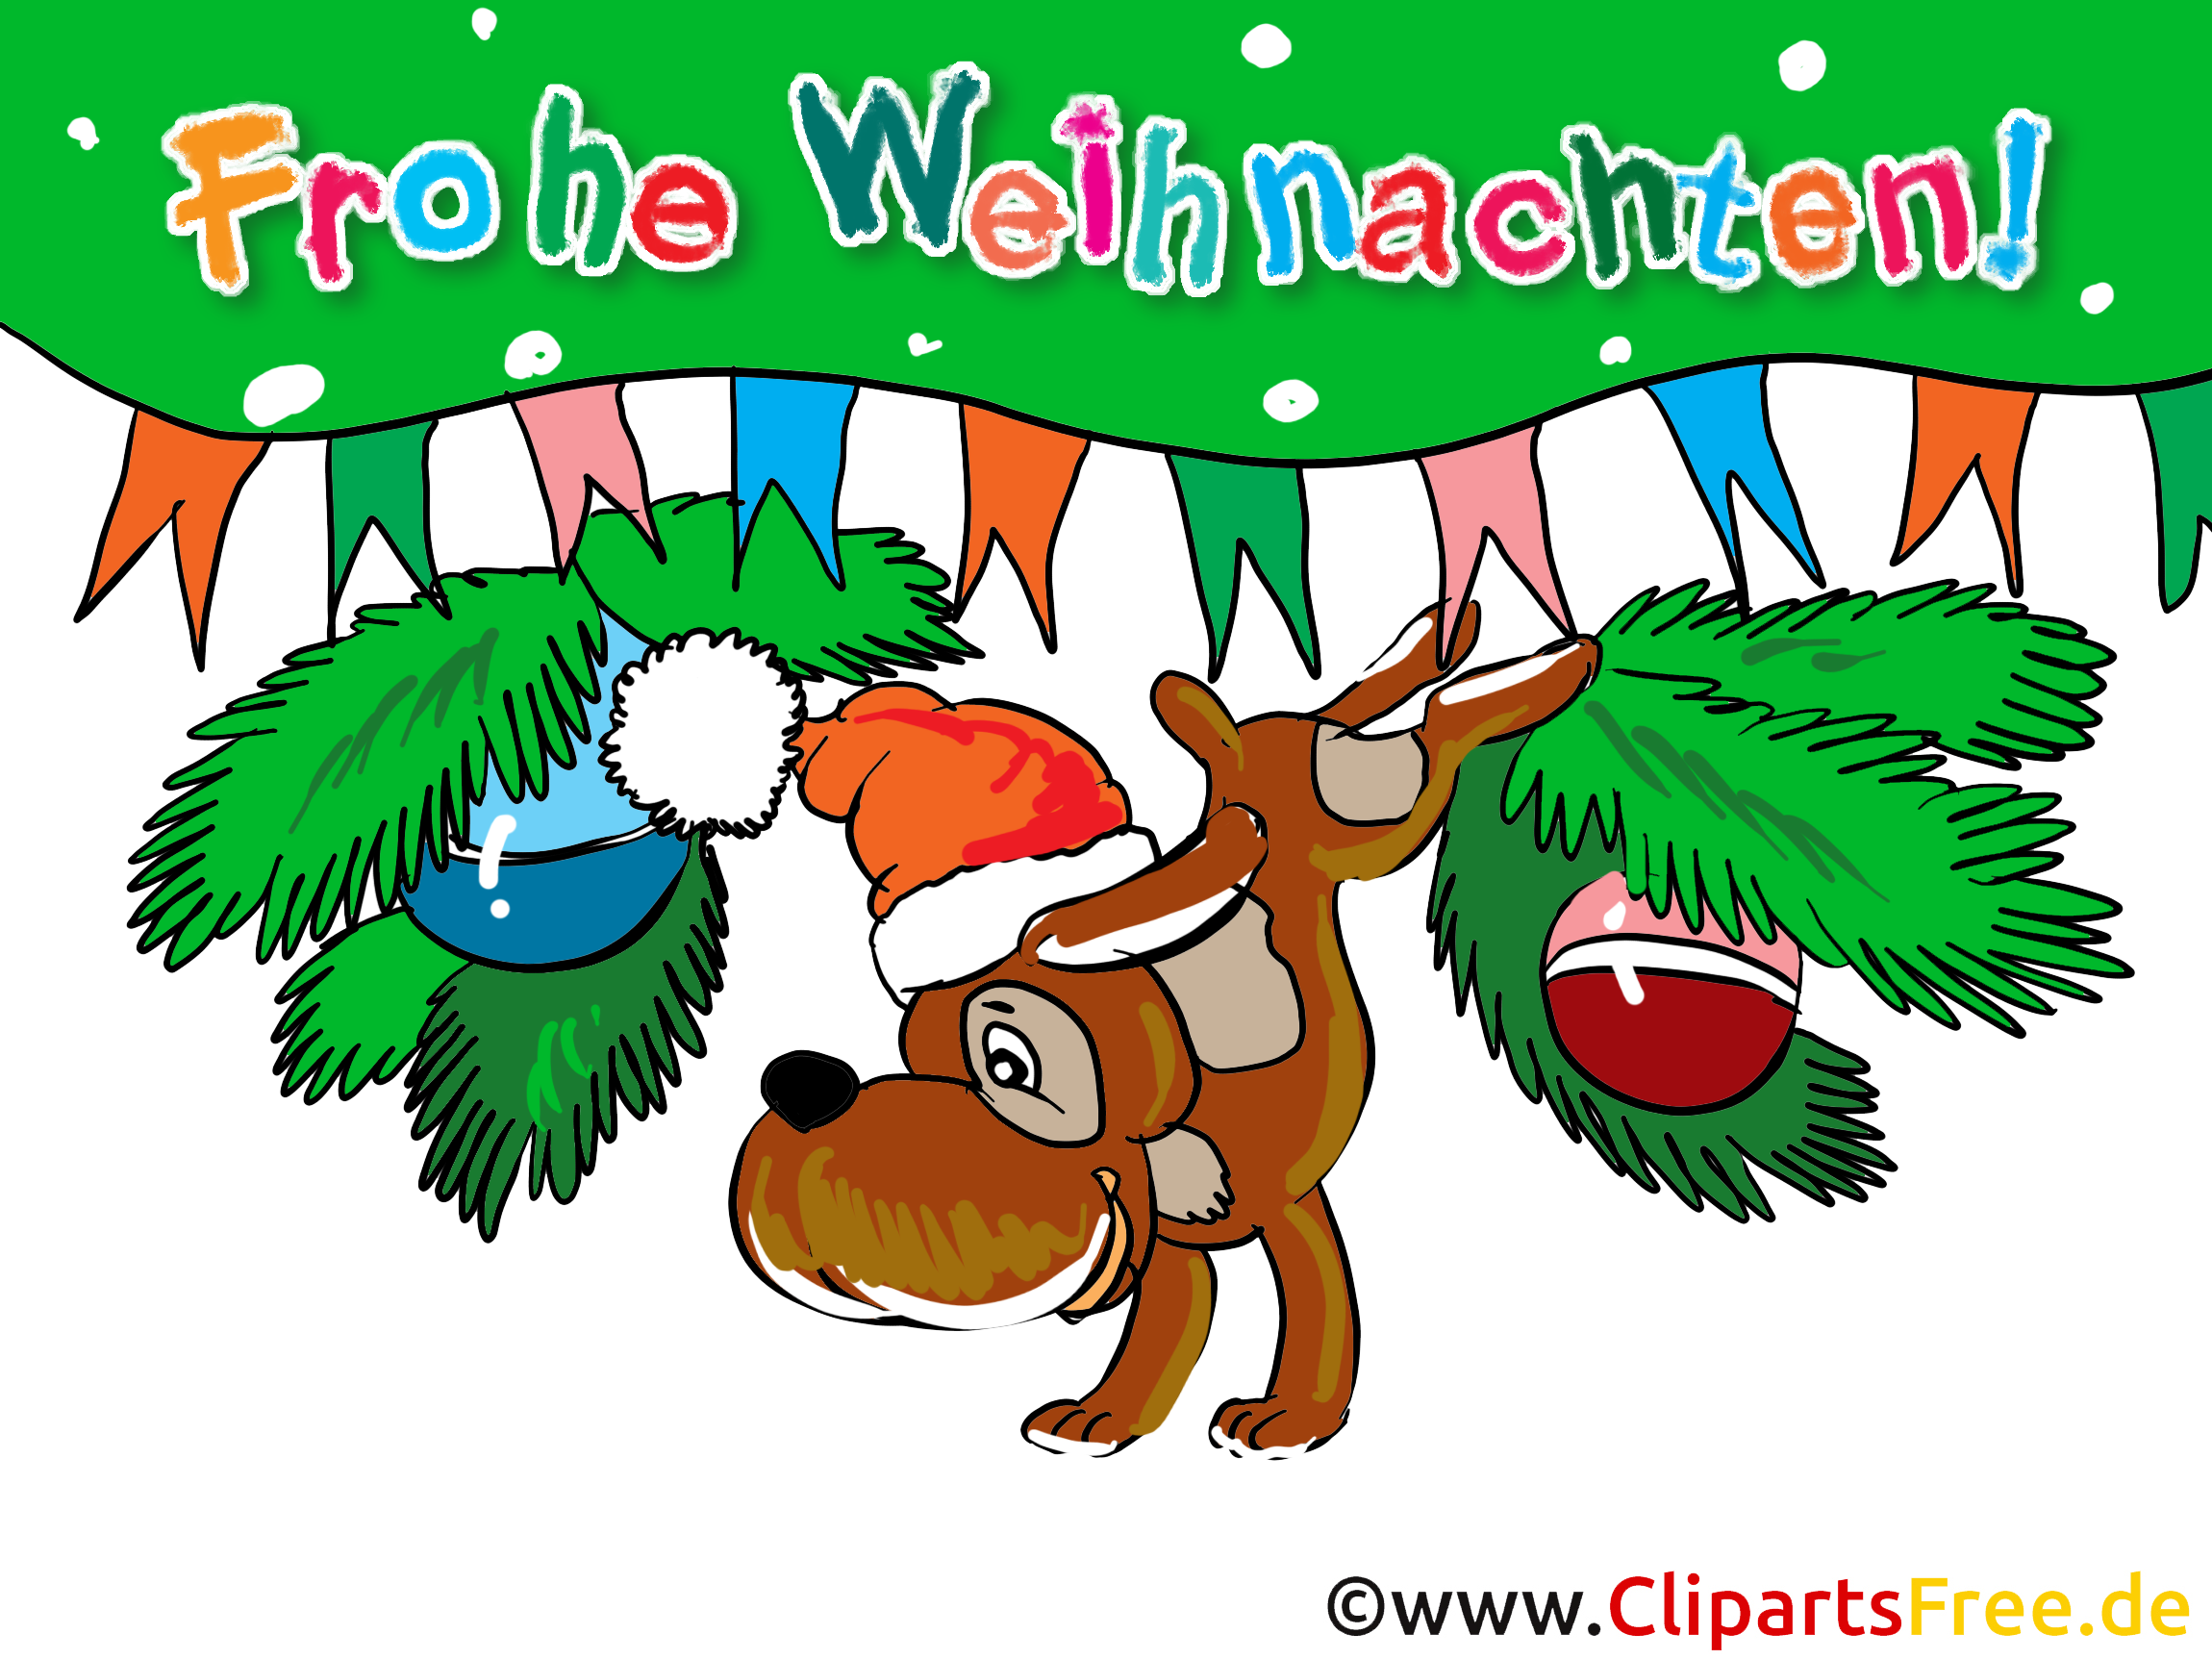 Frohe Weihnachtsgruesse